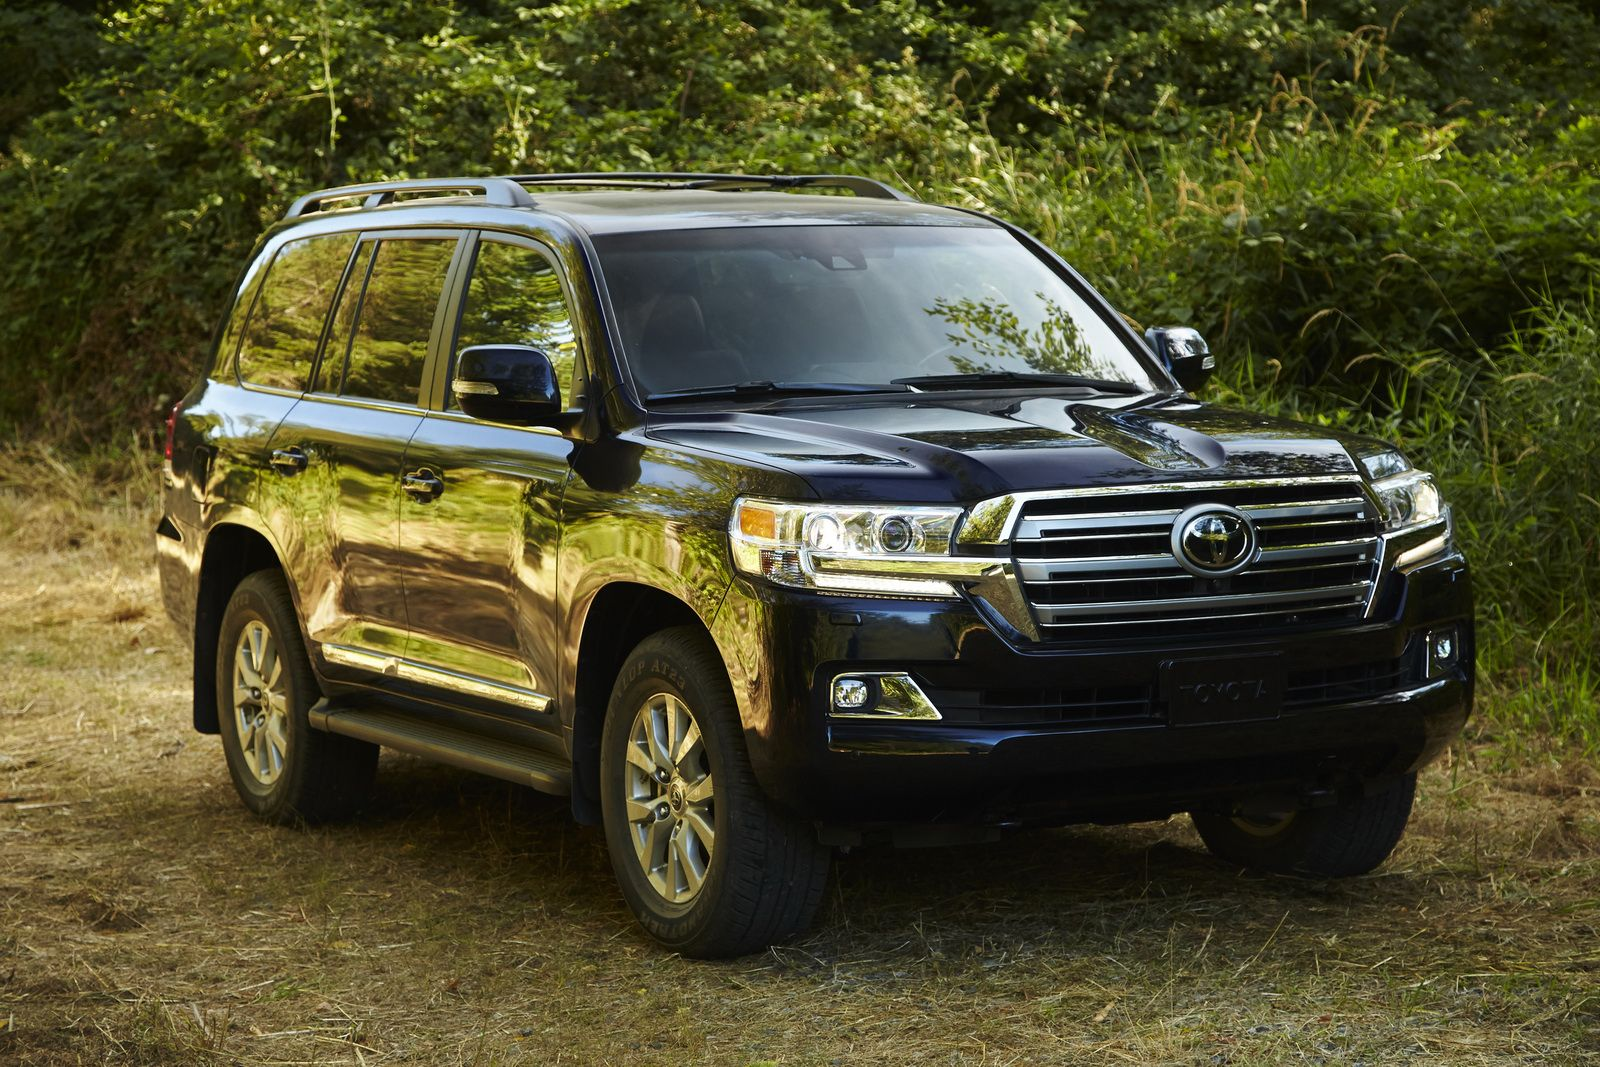 2016 toyota land cruiser facelift picture 05 toyota 2016 pinterest toyota land cruiser land cruiser and toyota